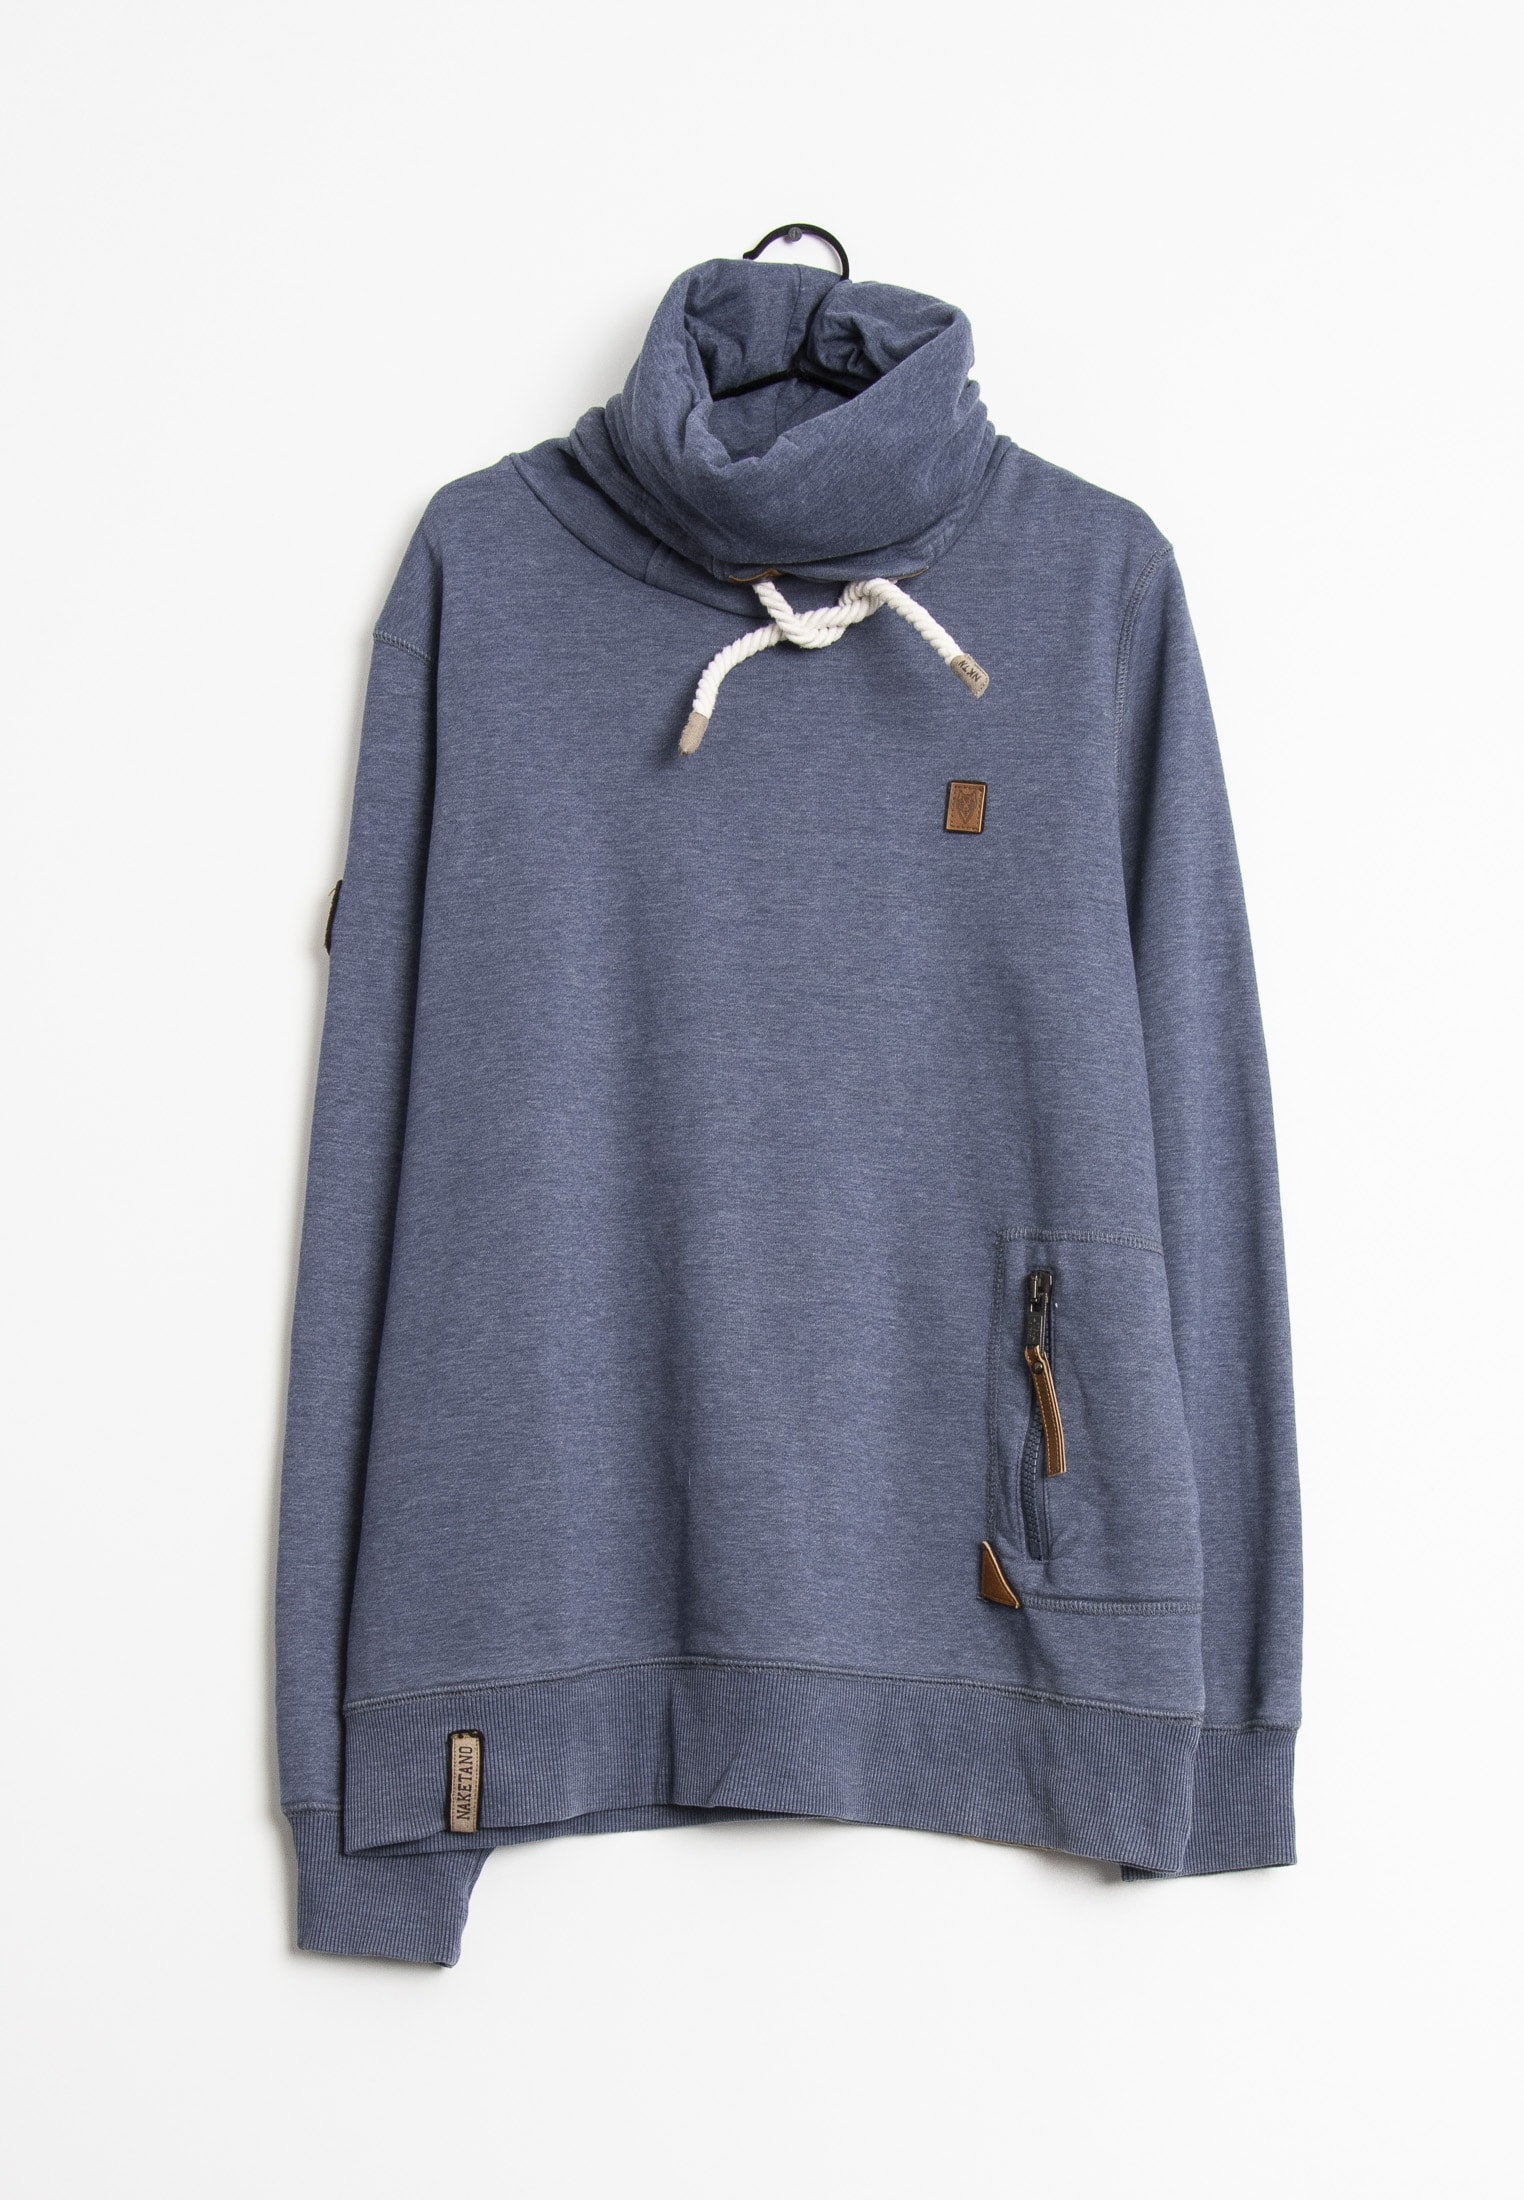 Naketano Sweat / Fleece Blau Gr.XL